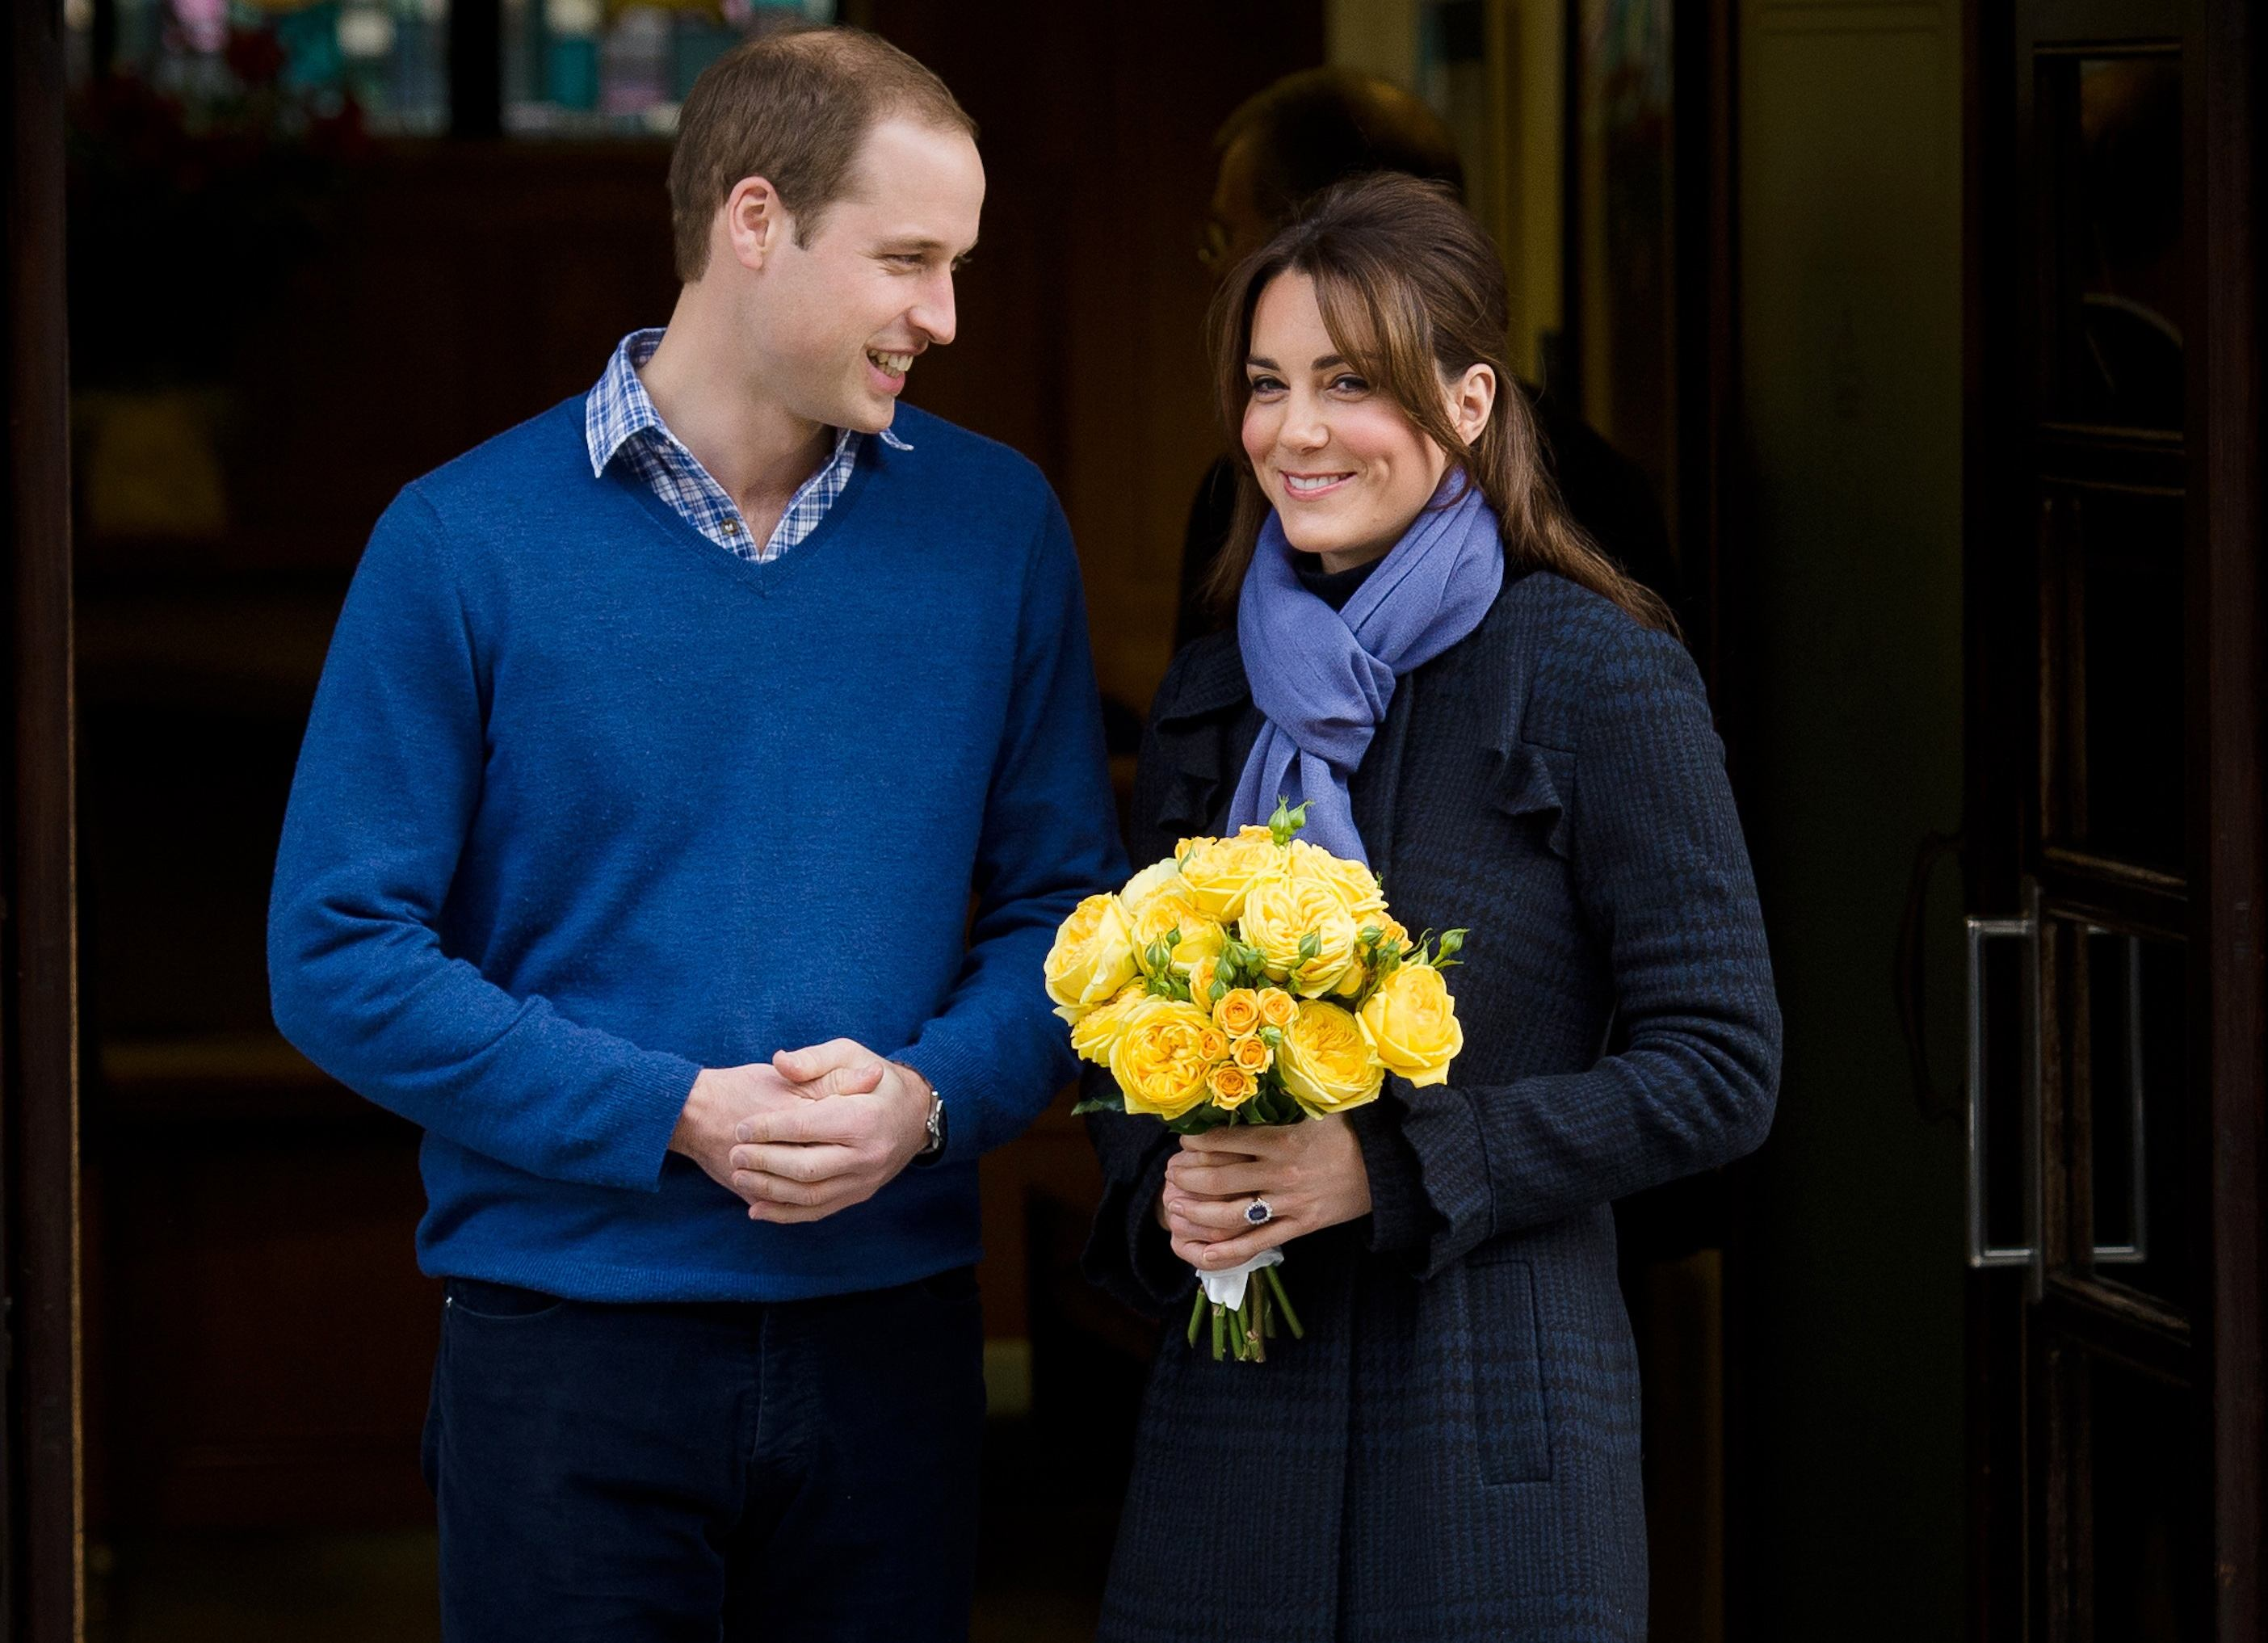 Prince William, the Duke of Cambridge (L) and his wife Catherine the Duchess of Cambridge in 2012